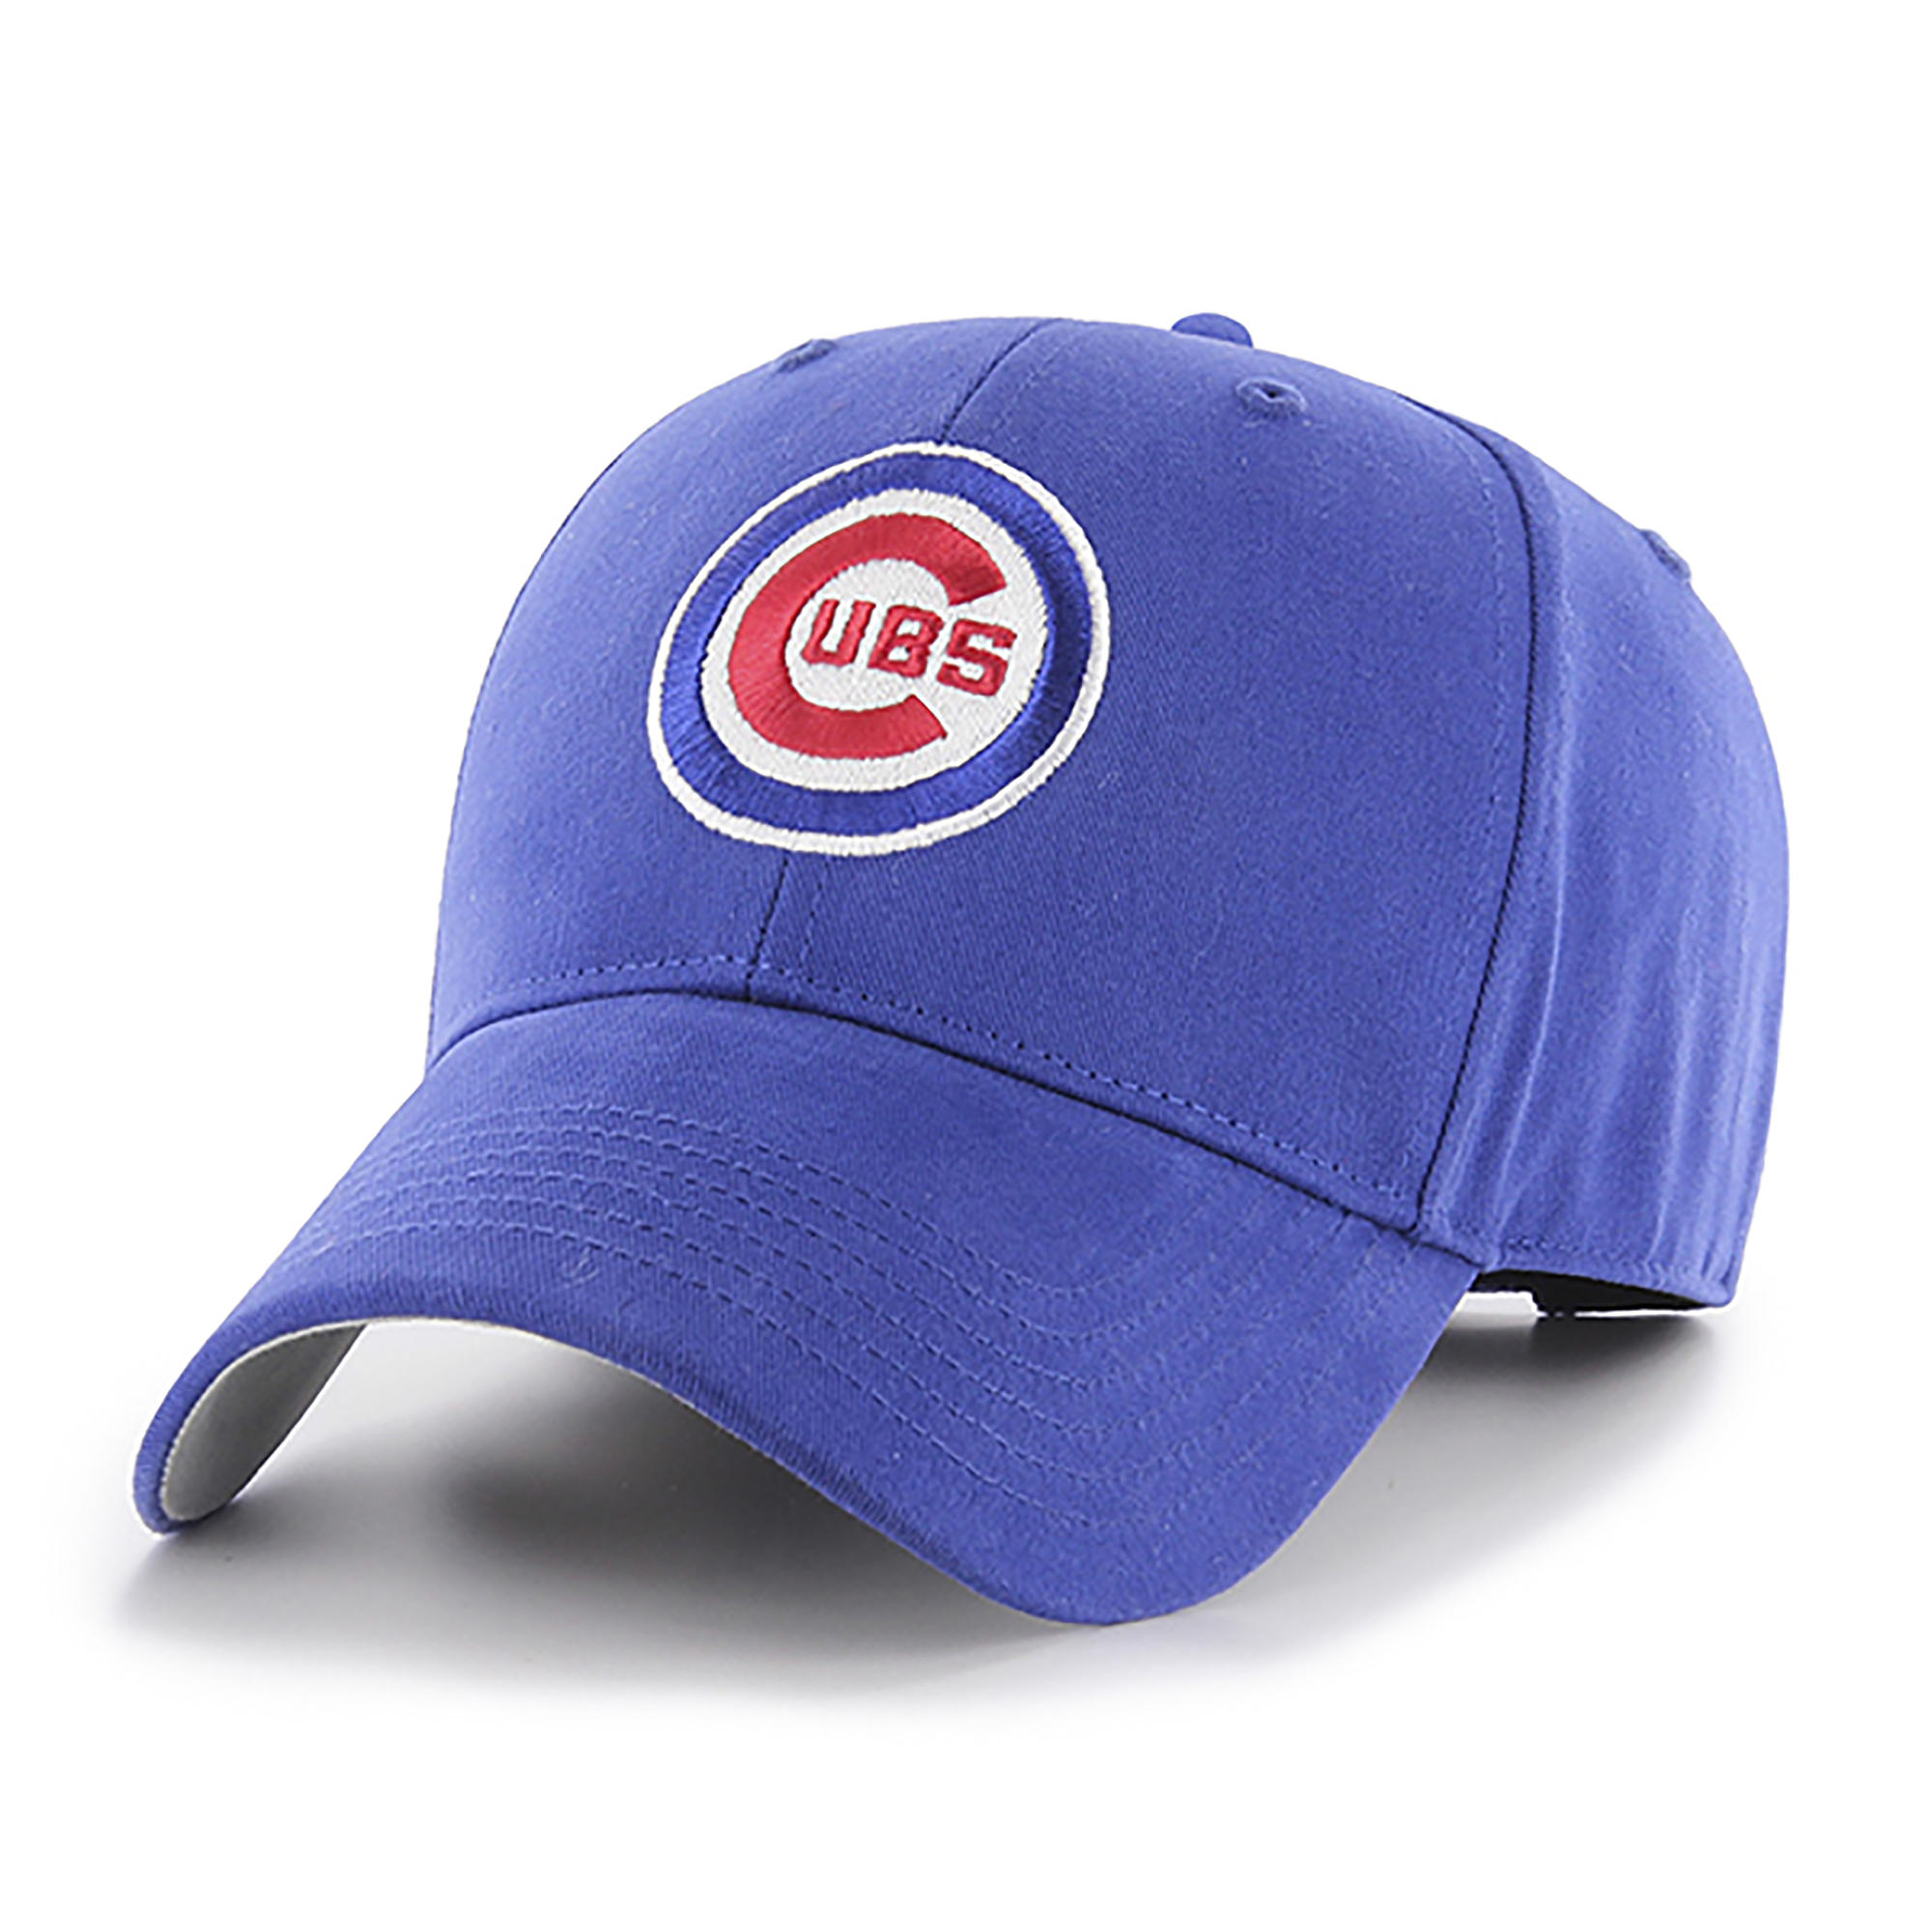 reputable site 253bc d1e31 usa mlb chicago cubs basic adjustable cap hat byu2026 9f6a1 67588